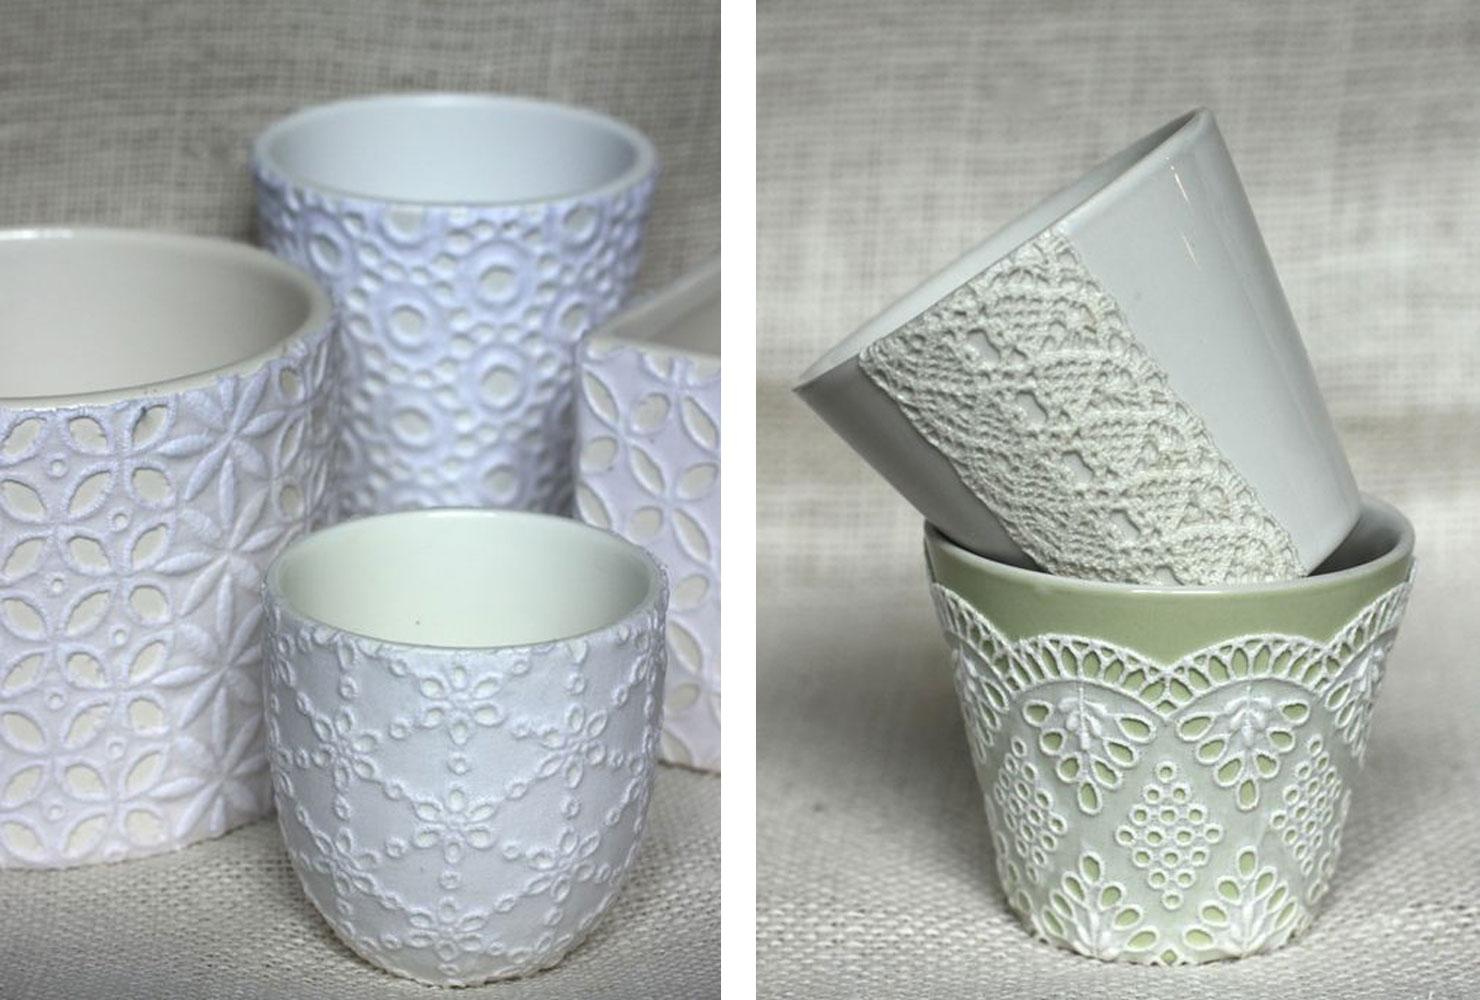 bowls that have lace attached to them